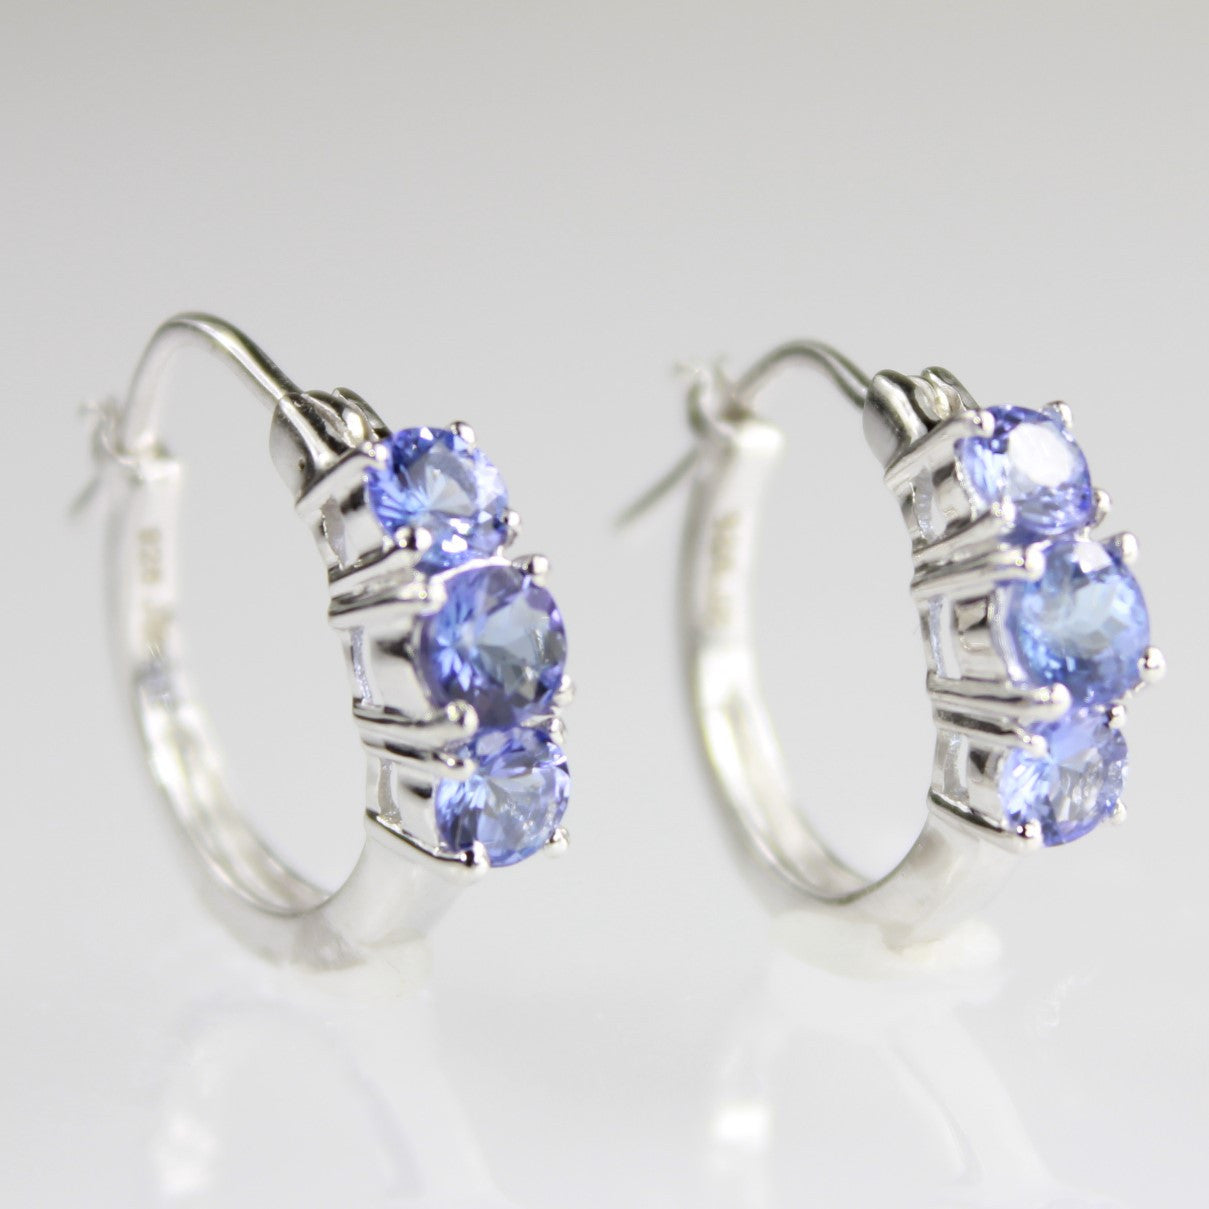 Genuine Tanzanite 3 Stone Sterling Silver Hoop Earrings